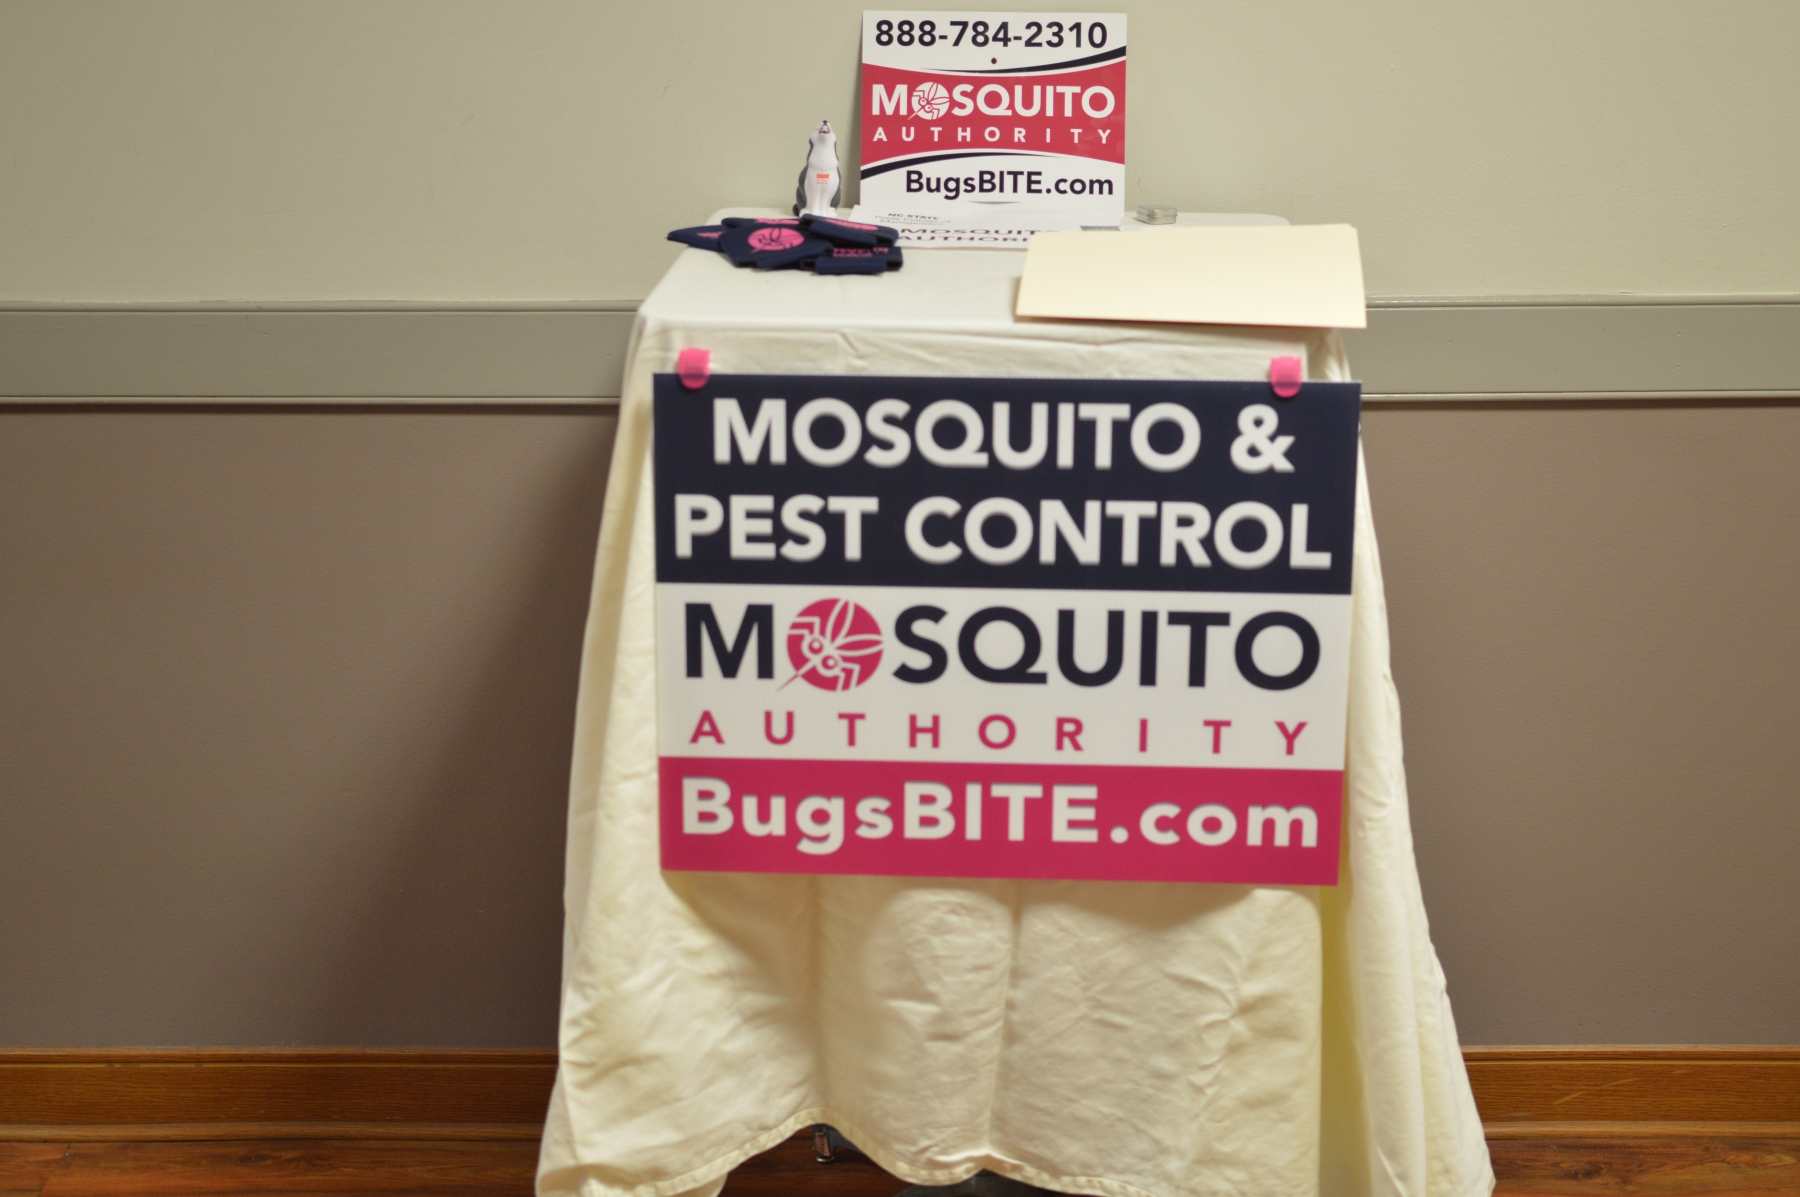 Mosquito-Authority-1